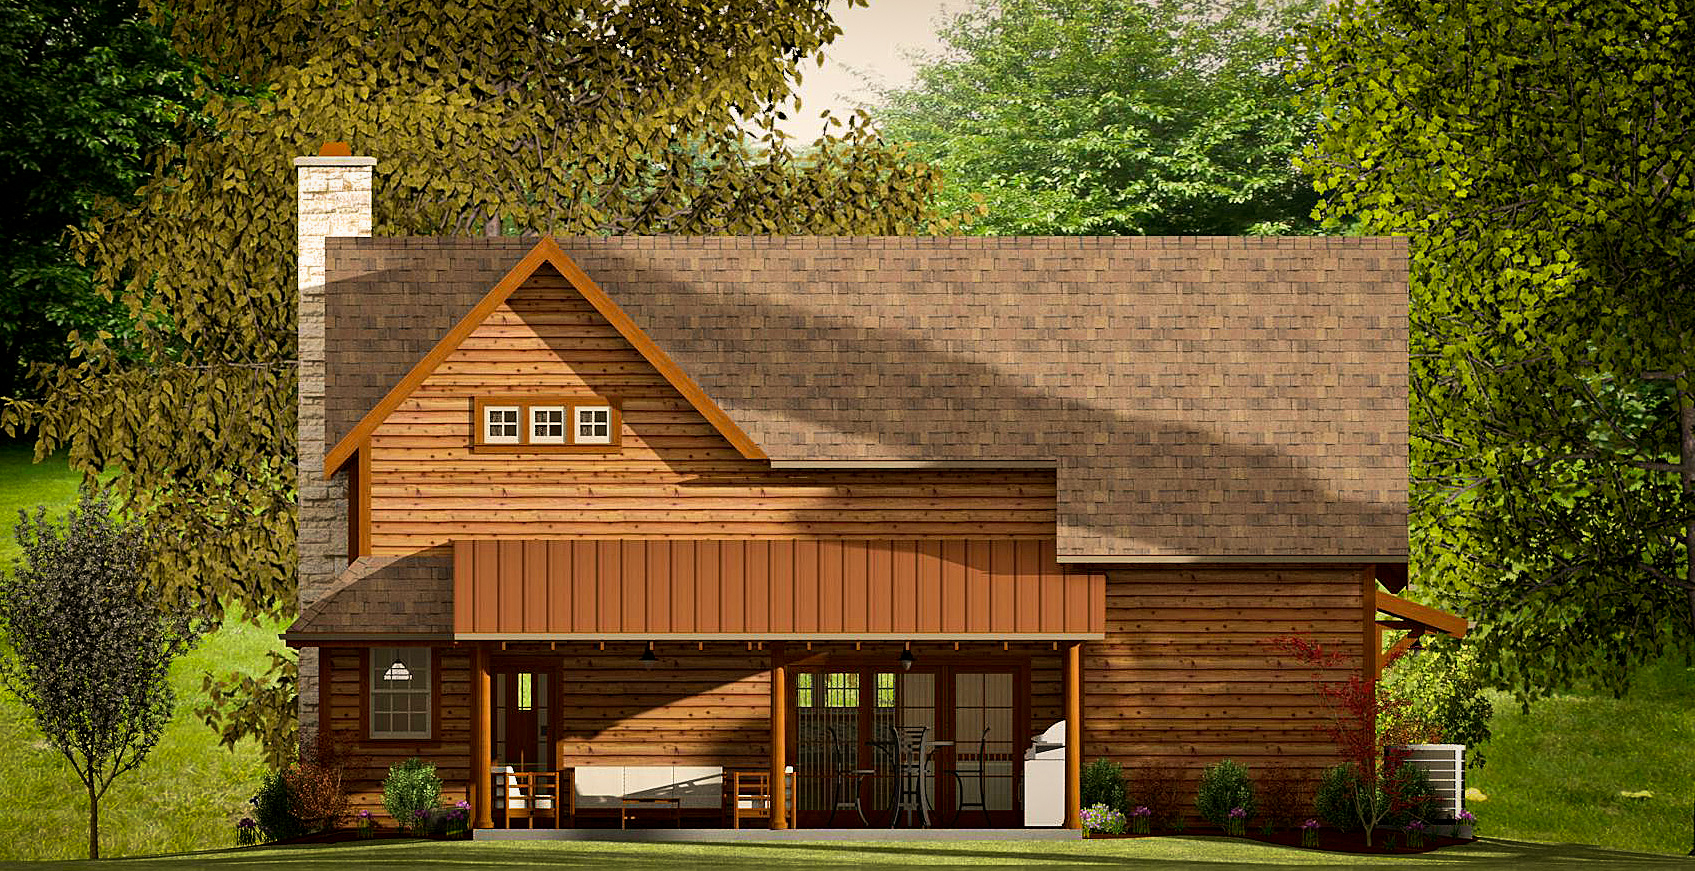 Small House Plans, Small Home Plans, Tiny Home Plans, Small Houses, Small Homes, Small Homes Builder, Small House Plans Texas